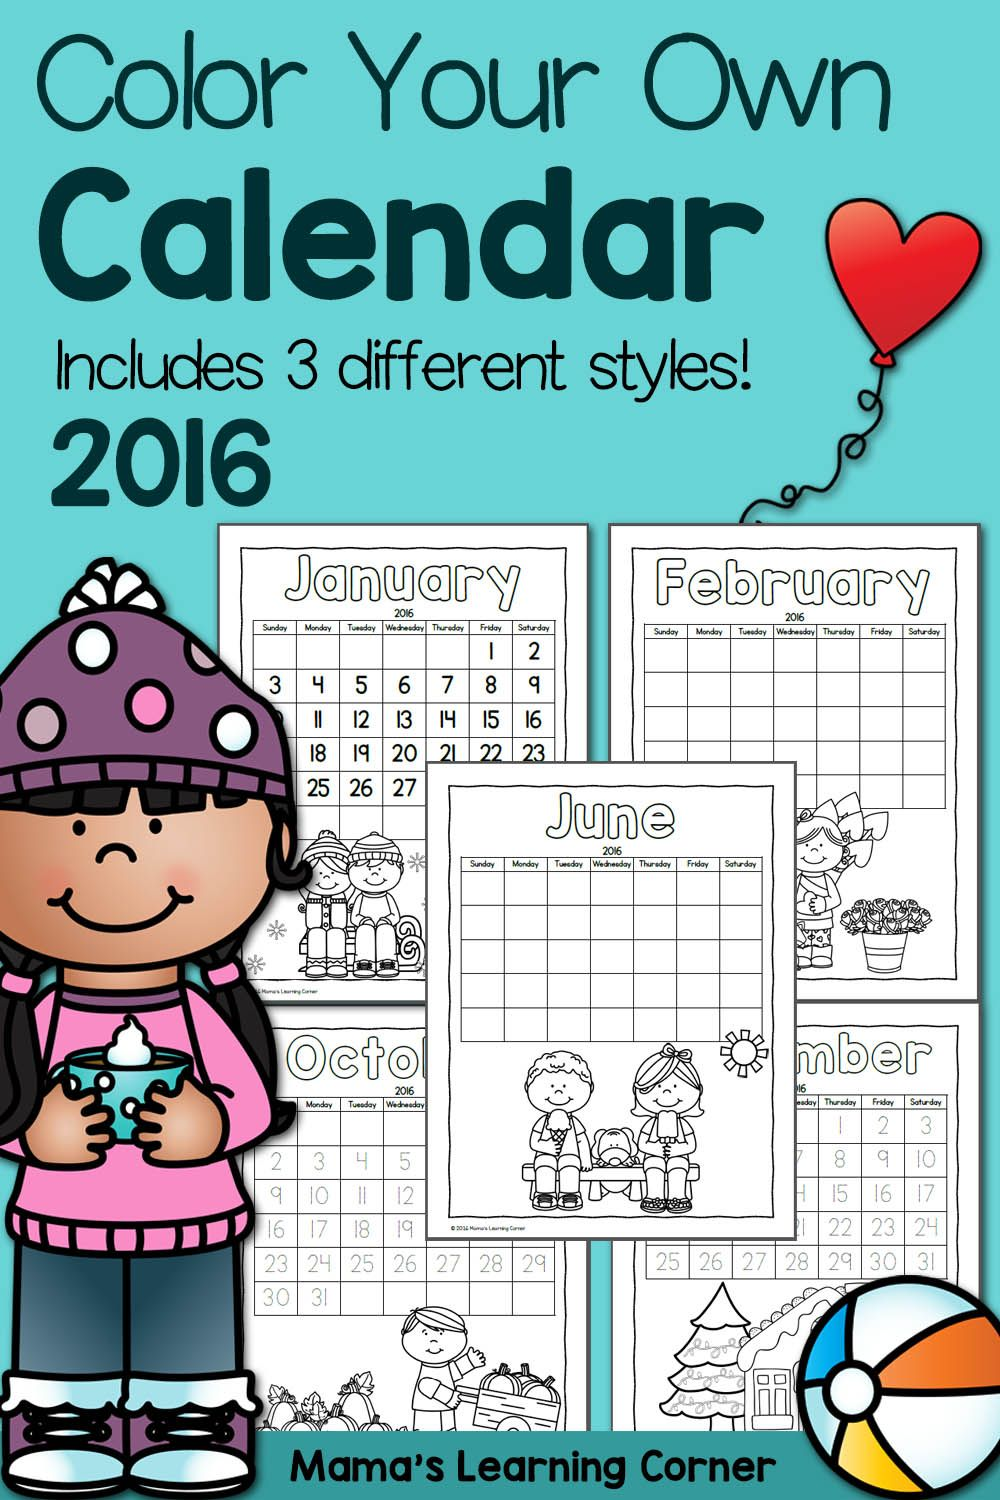 Color Fun! Printable Calendar for Kids 2016 | Ultimate Homeschool ...